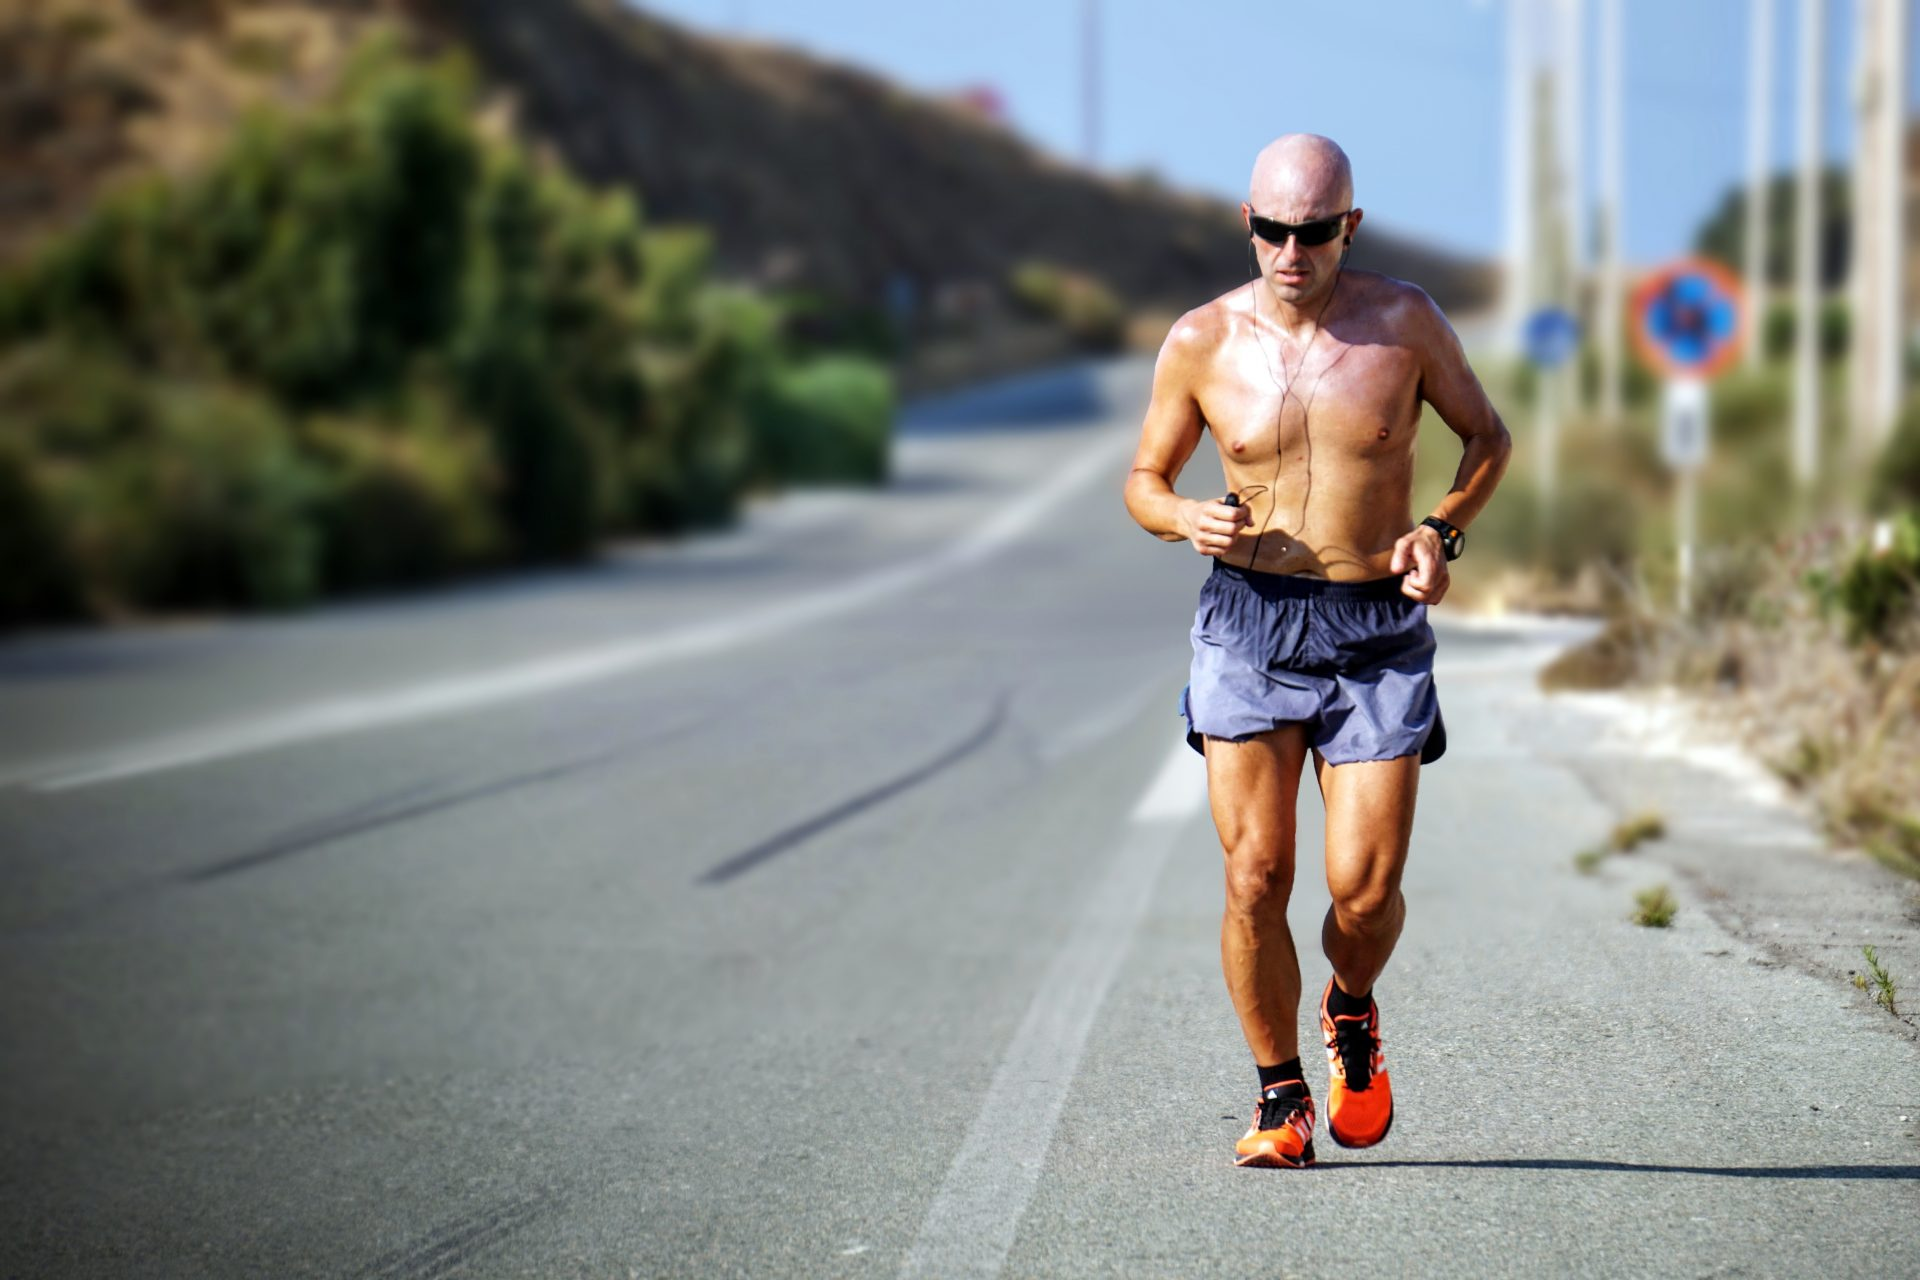 The world's fastest old man is 71, holds two world records and is aiming for a third